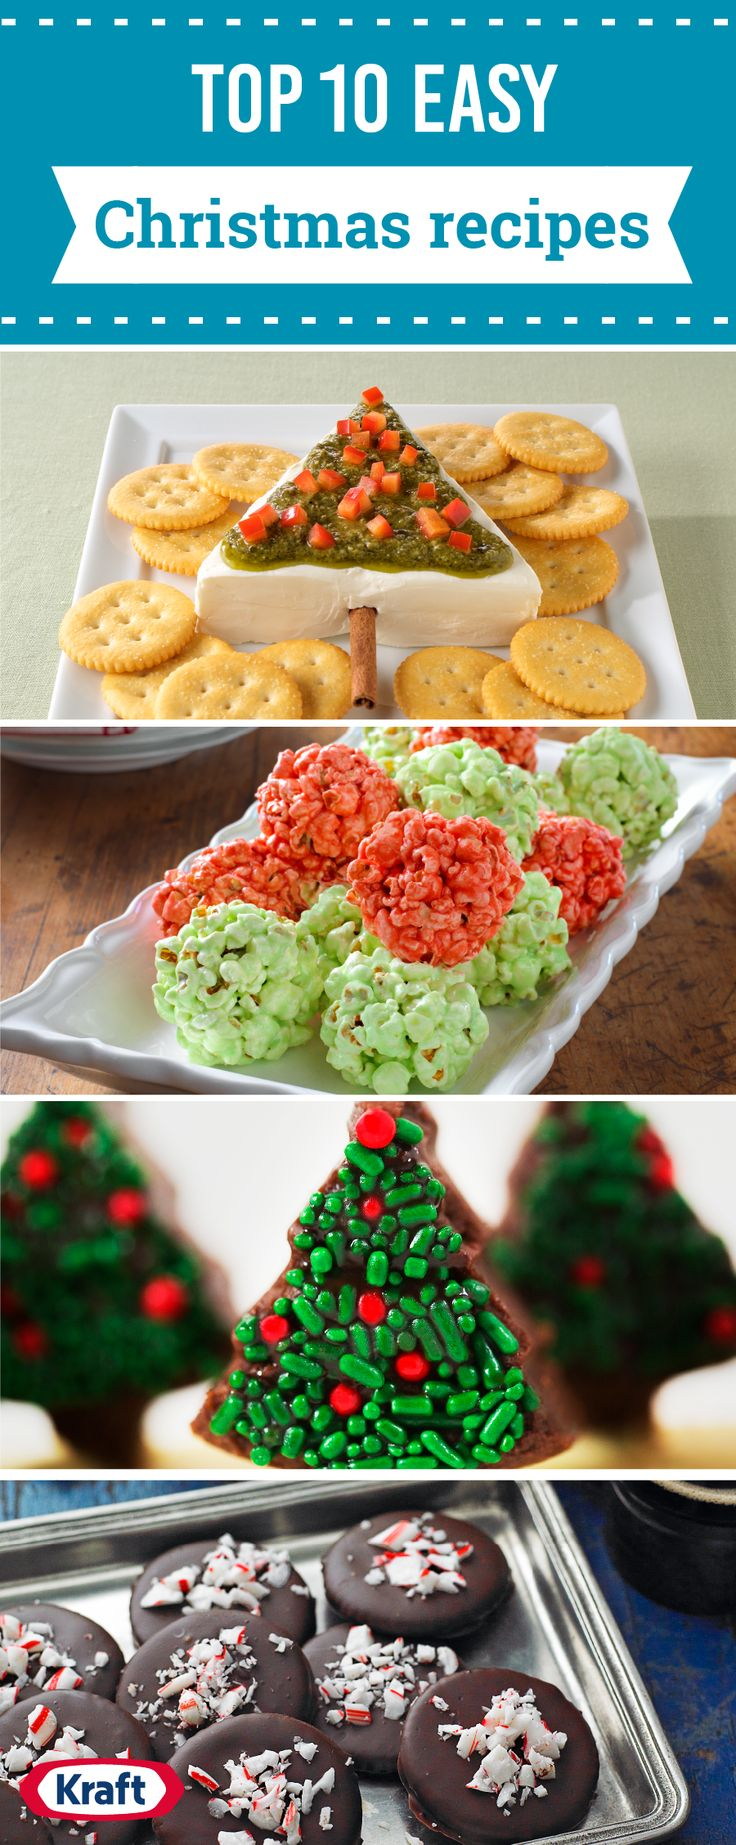 Top 10 Easy Christmas Recipes – Yeah, you read that right. These are easy Christmas recipes. Because while we're as fond of extravagant Christmas recipes as anyone else, sometimes you need to have some that are quick or easy (preferably both) to round out your traditional Christmas menu! Click to find a variety of homemade edible gifts, no-bake desserts, and savory options, too.